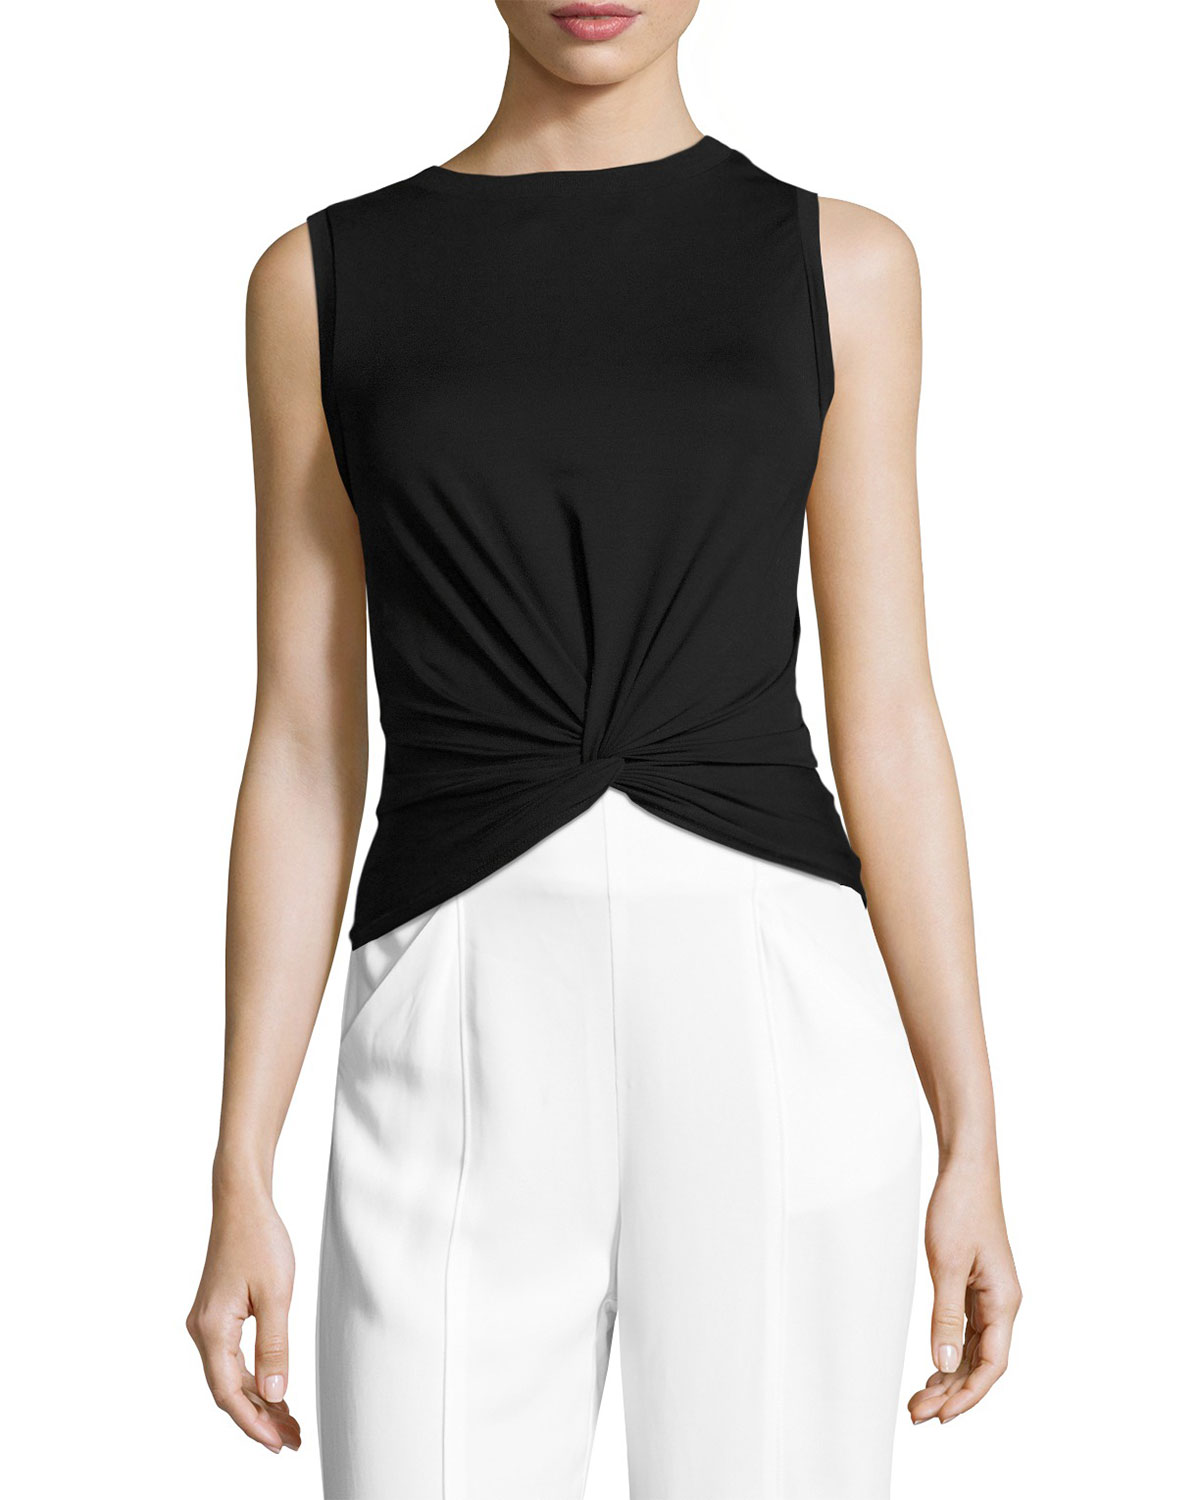 Lennon Knotted Sleeveless Top, Black